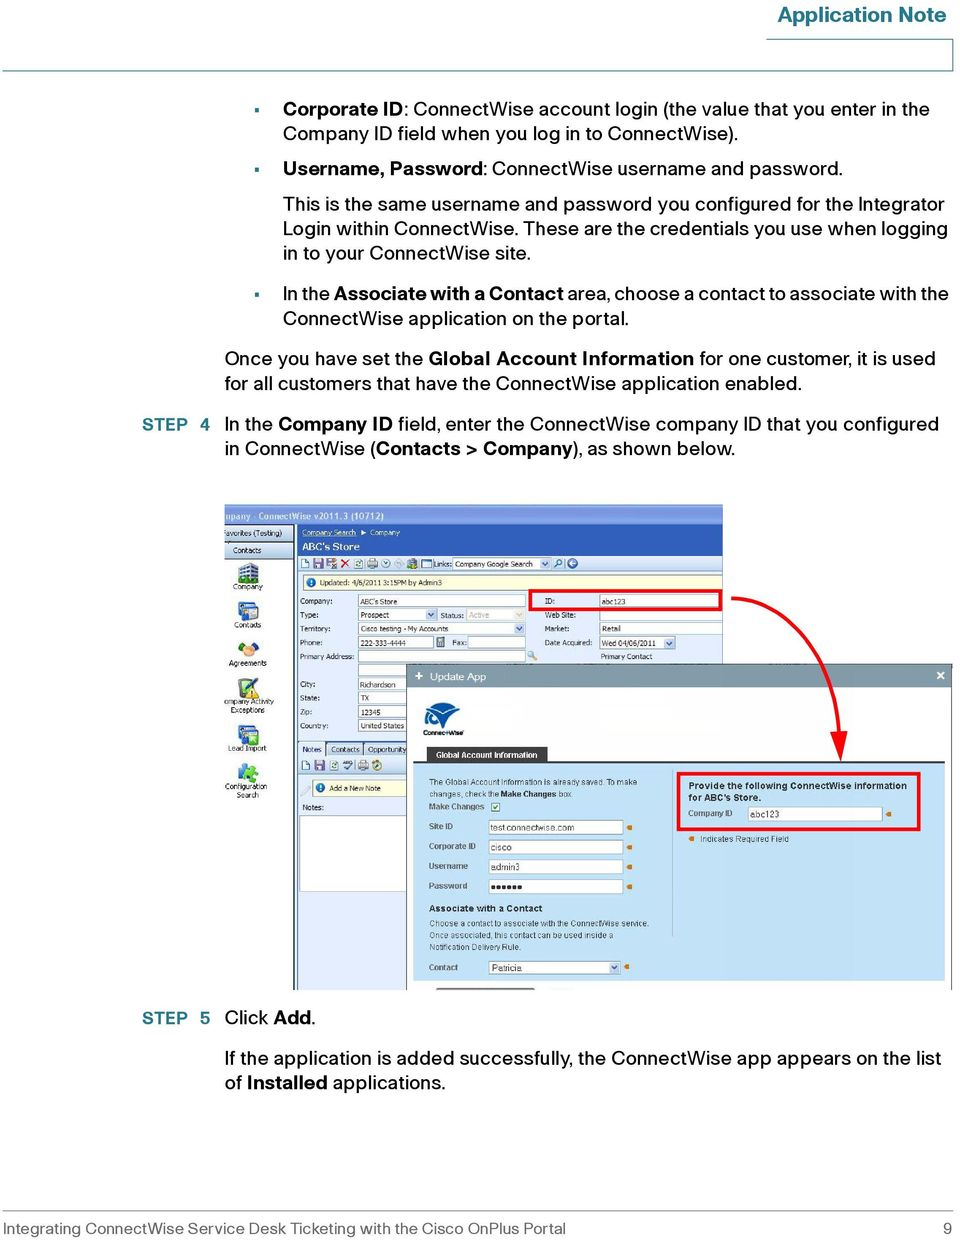 Integrating ConnectWise Service Desk Ticketing with the